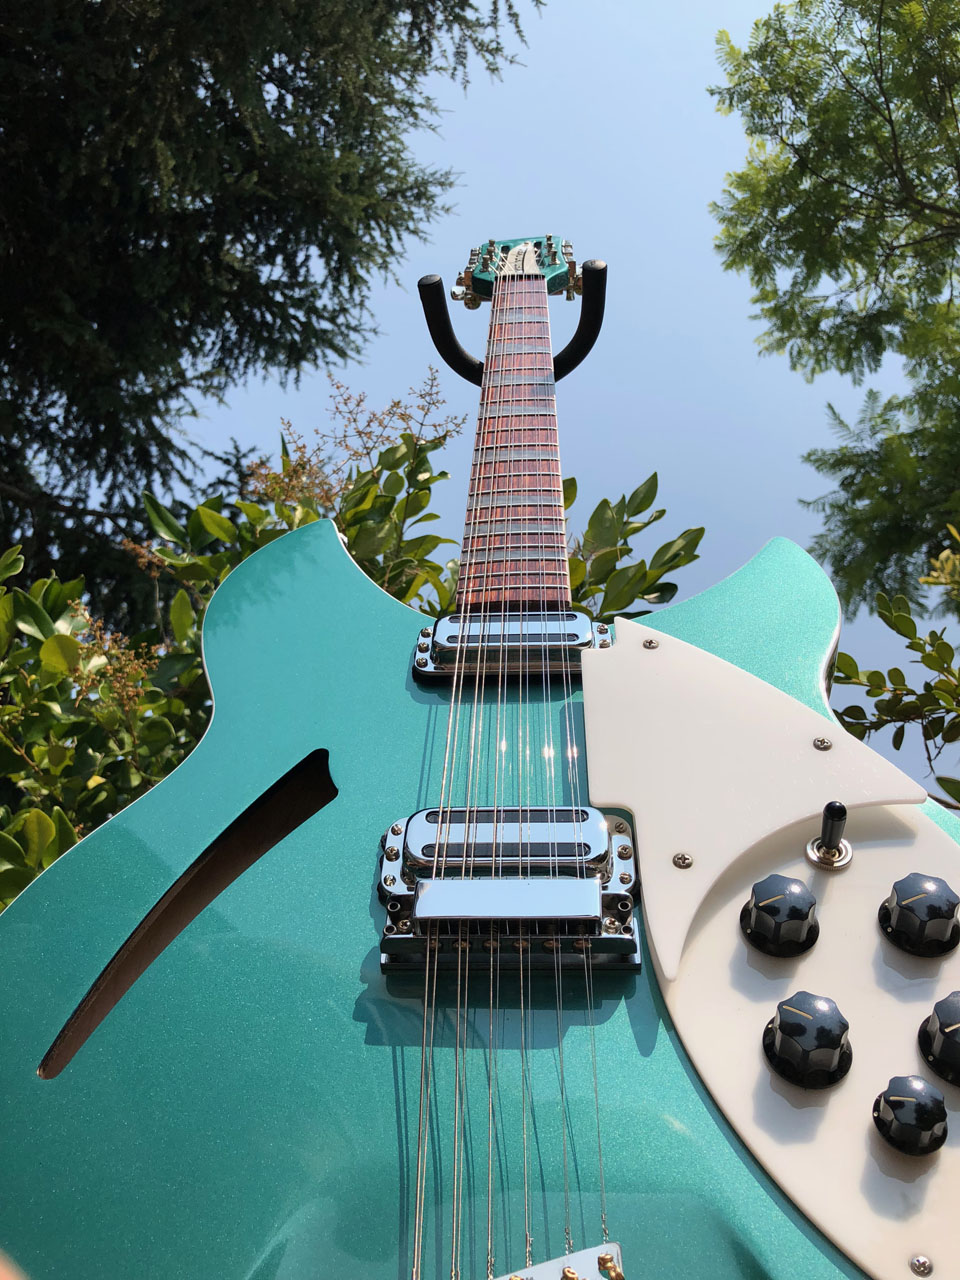 WORM'S-EYE VIEW DISPLAYS ICONIC RICKENBACKER BODY SHAPE